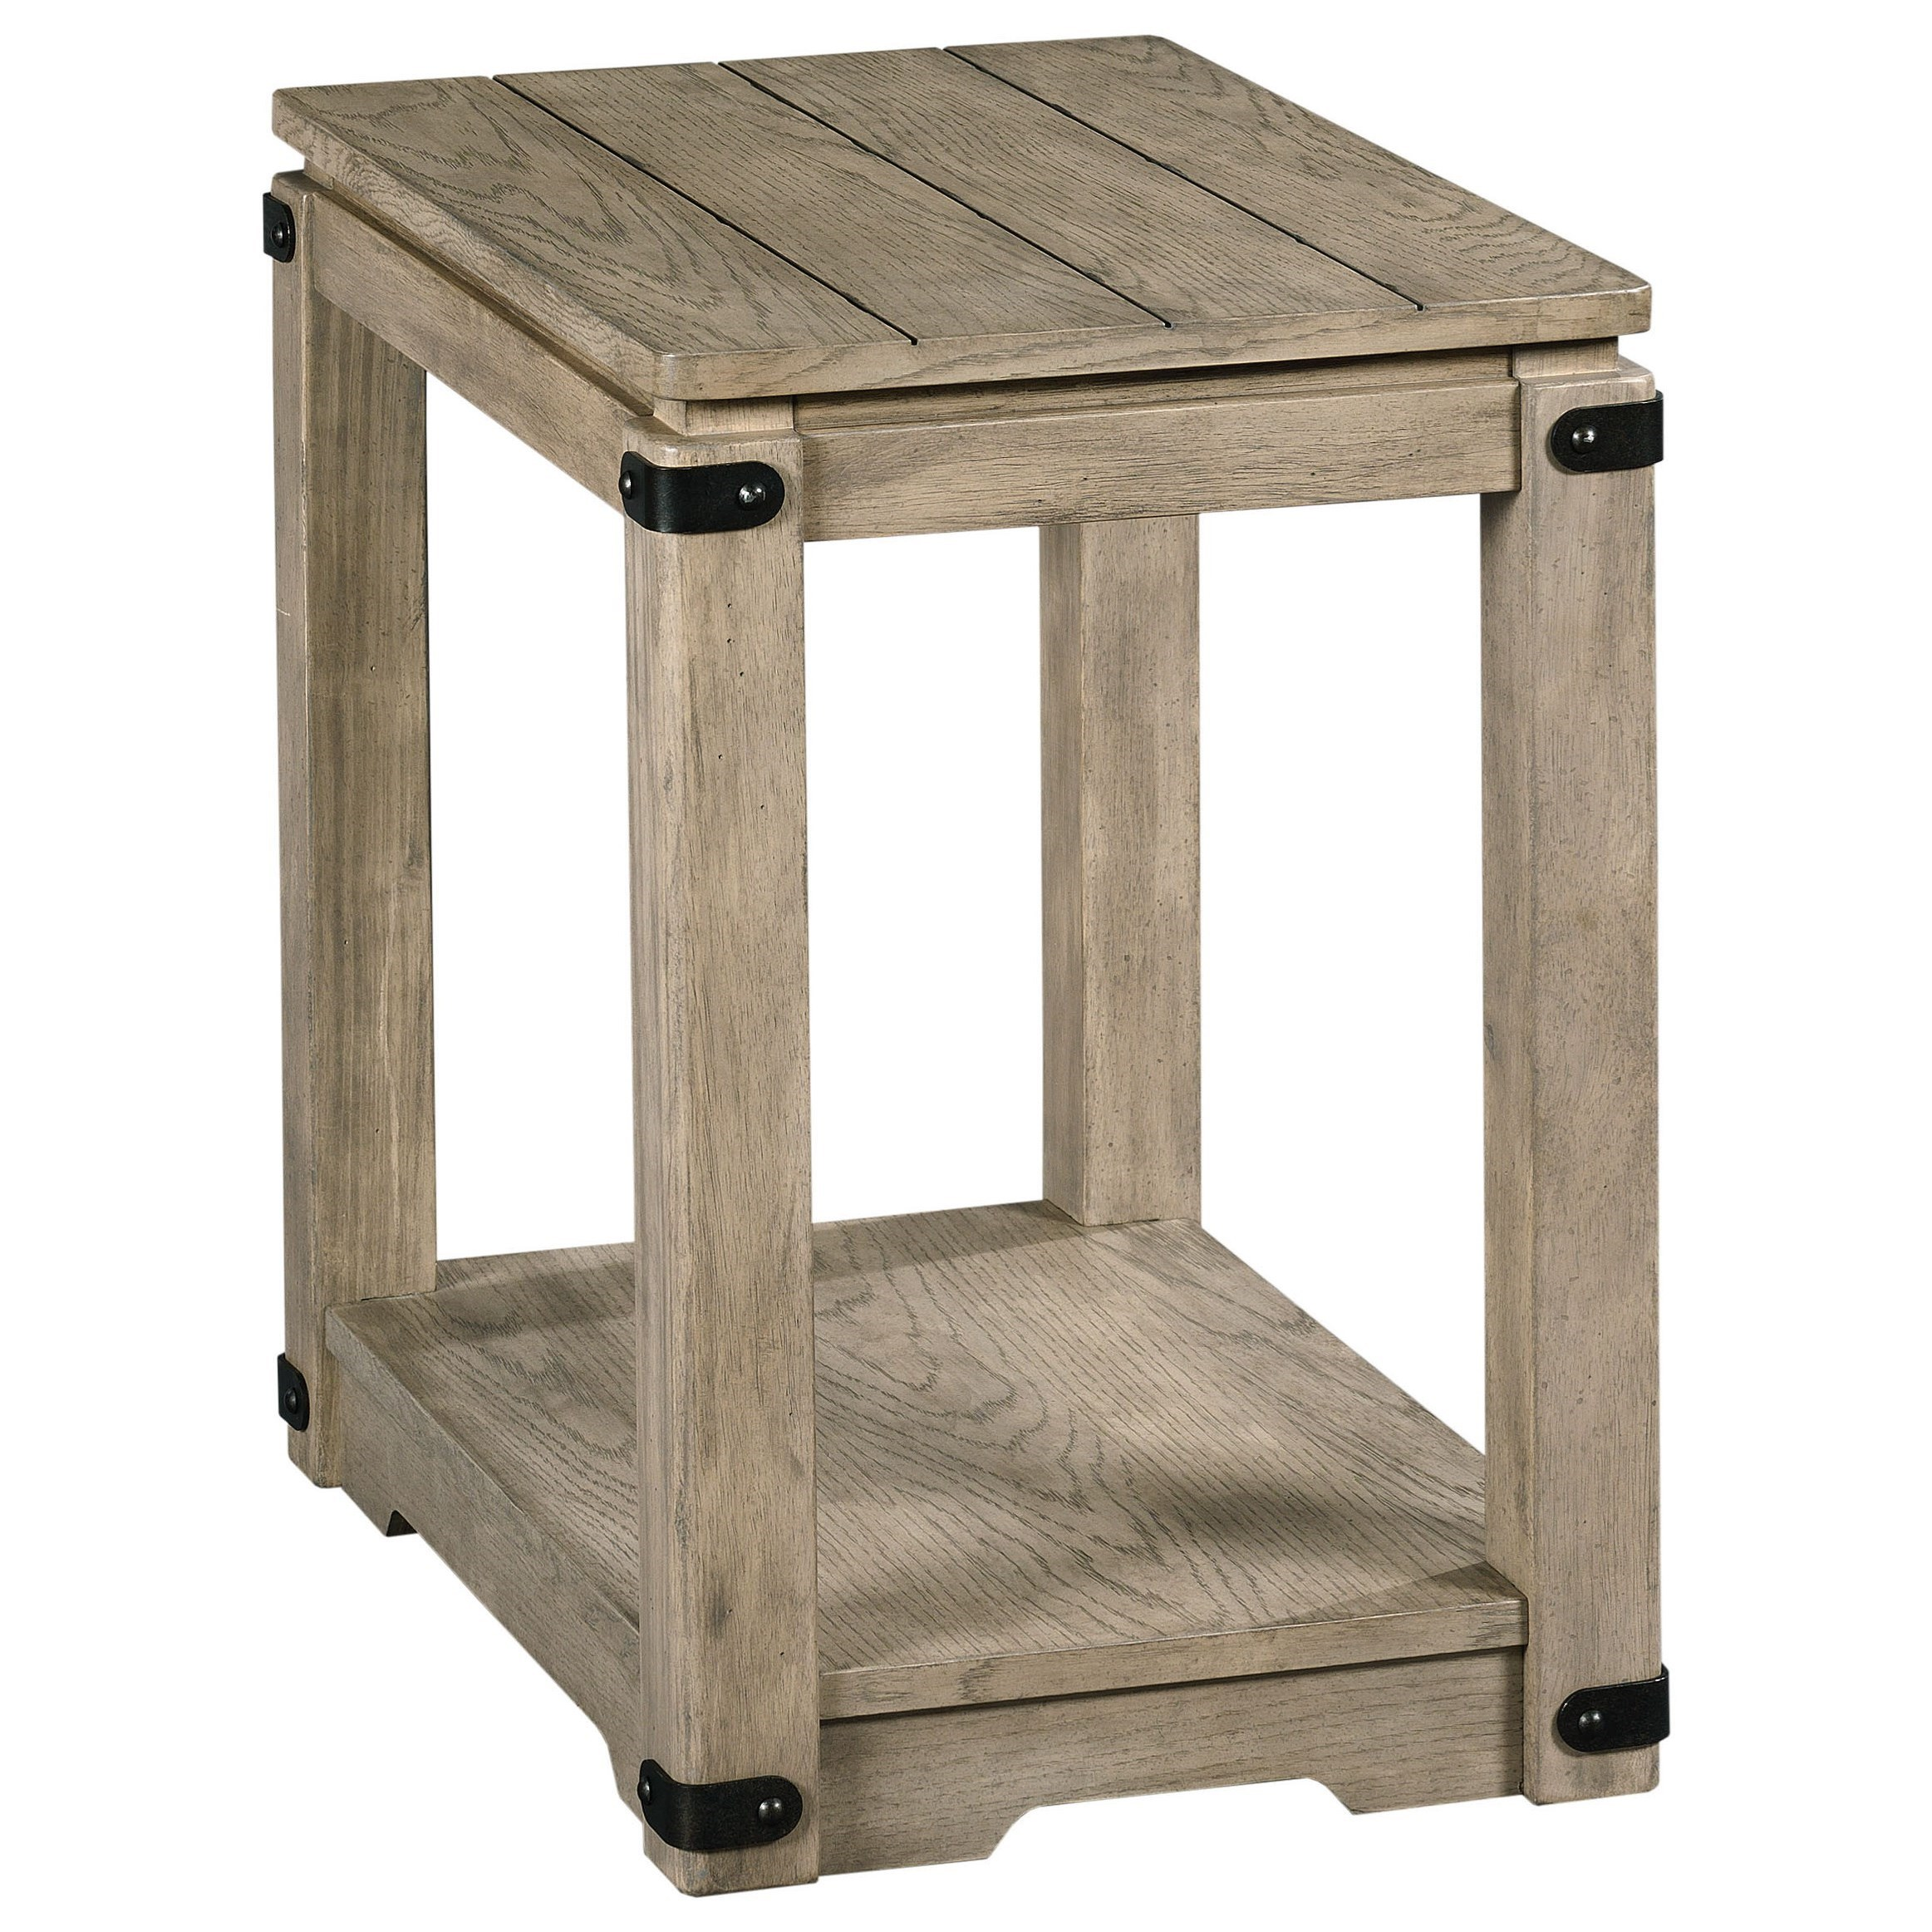 Marin Chairside Table by Alexvale at Northeast Factory Direct